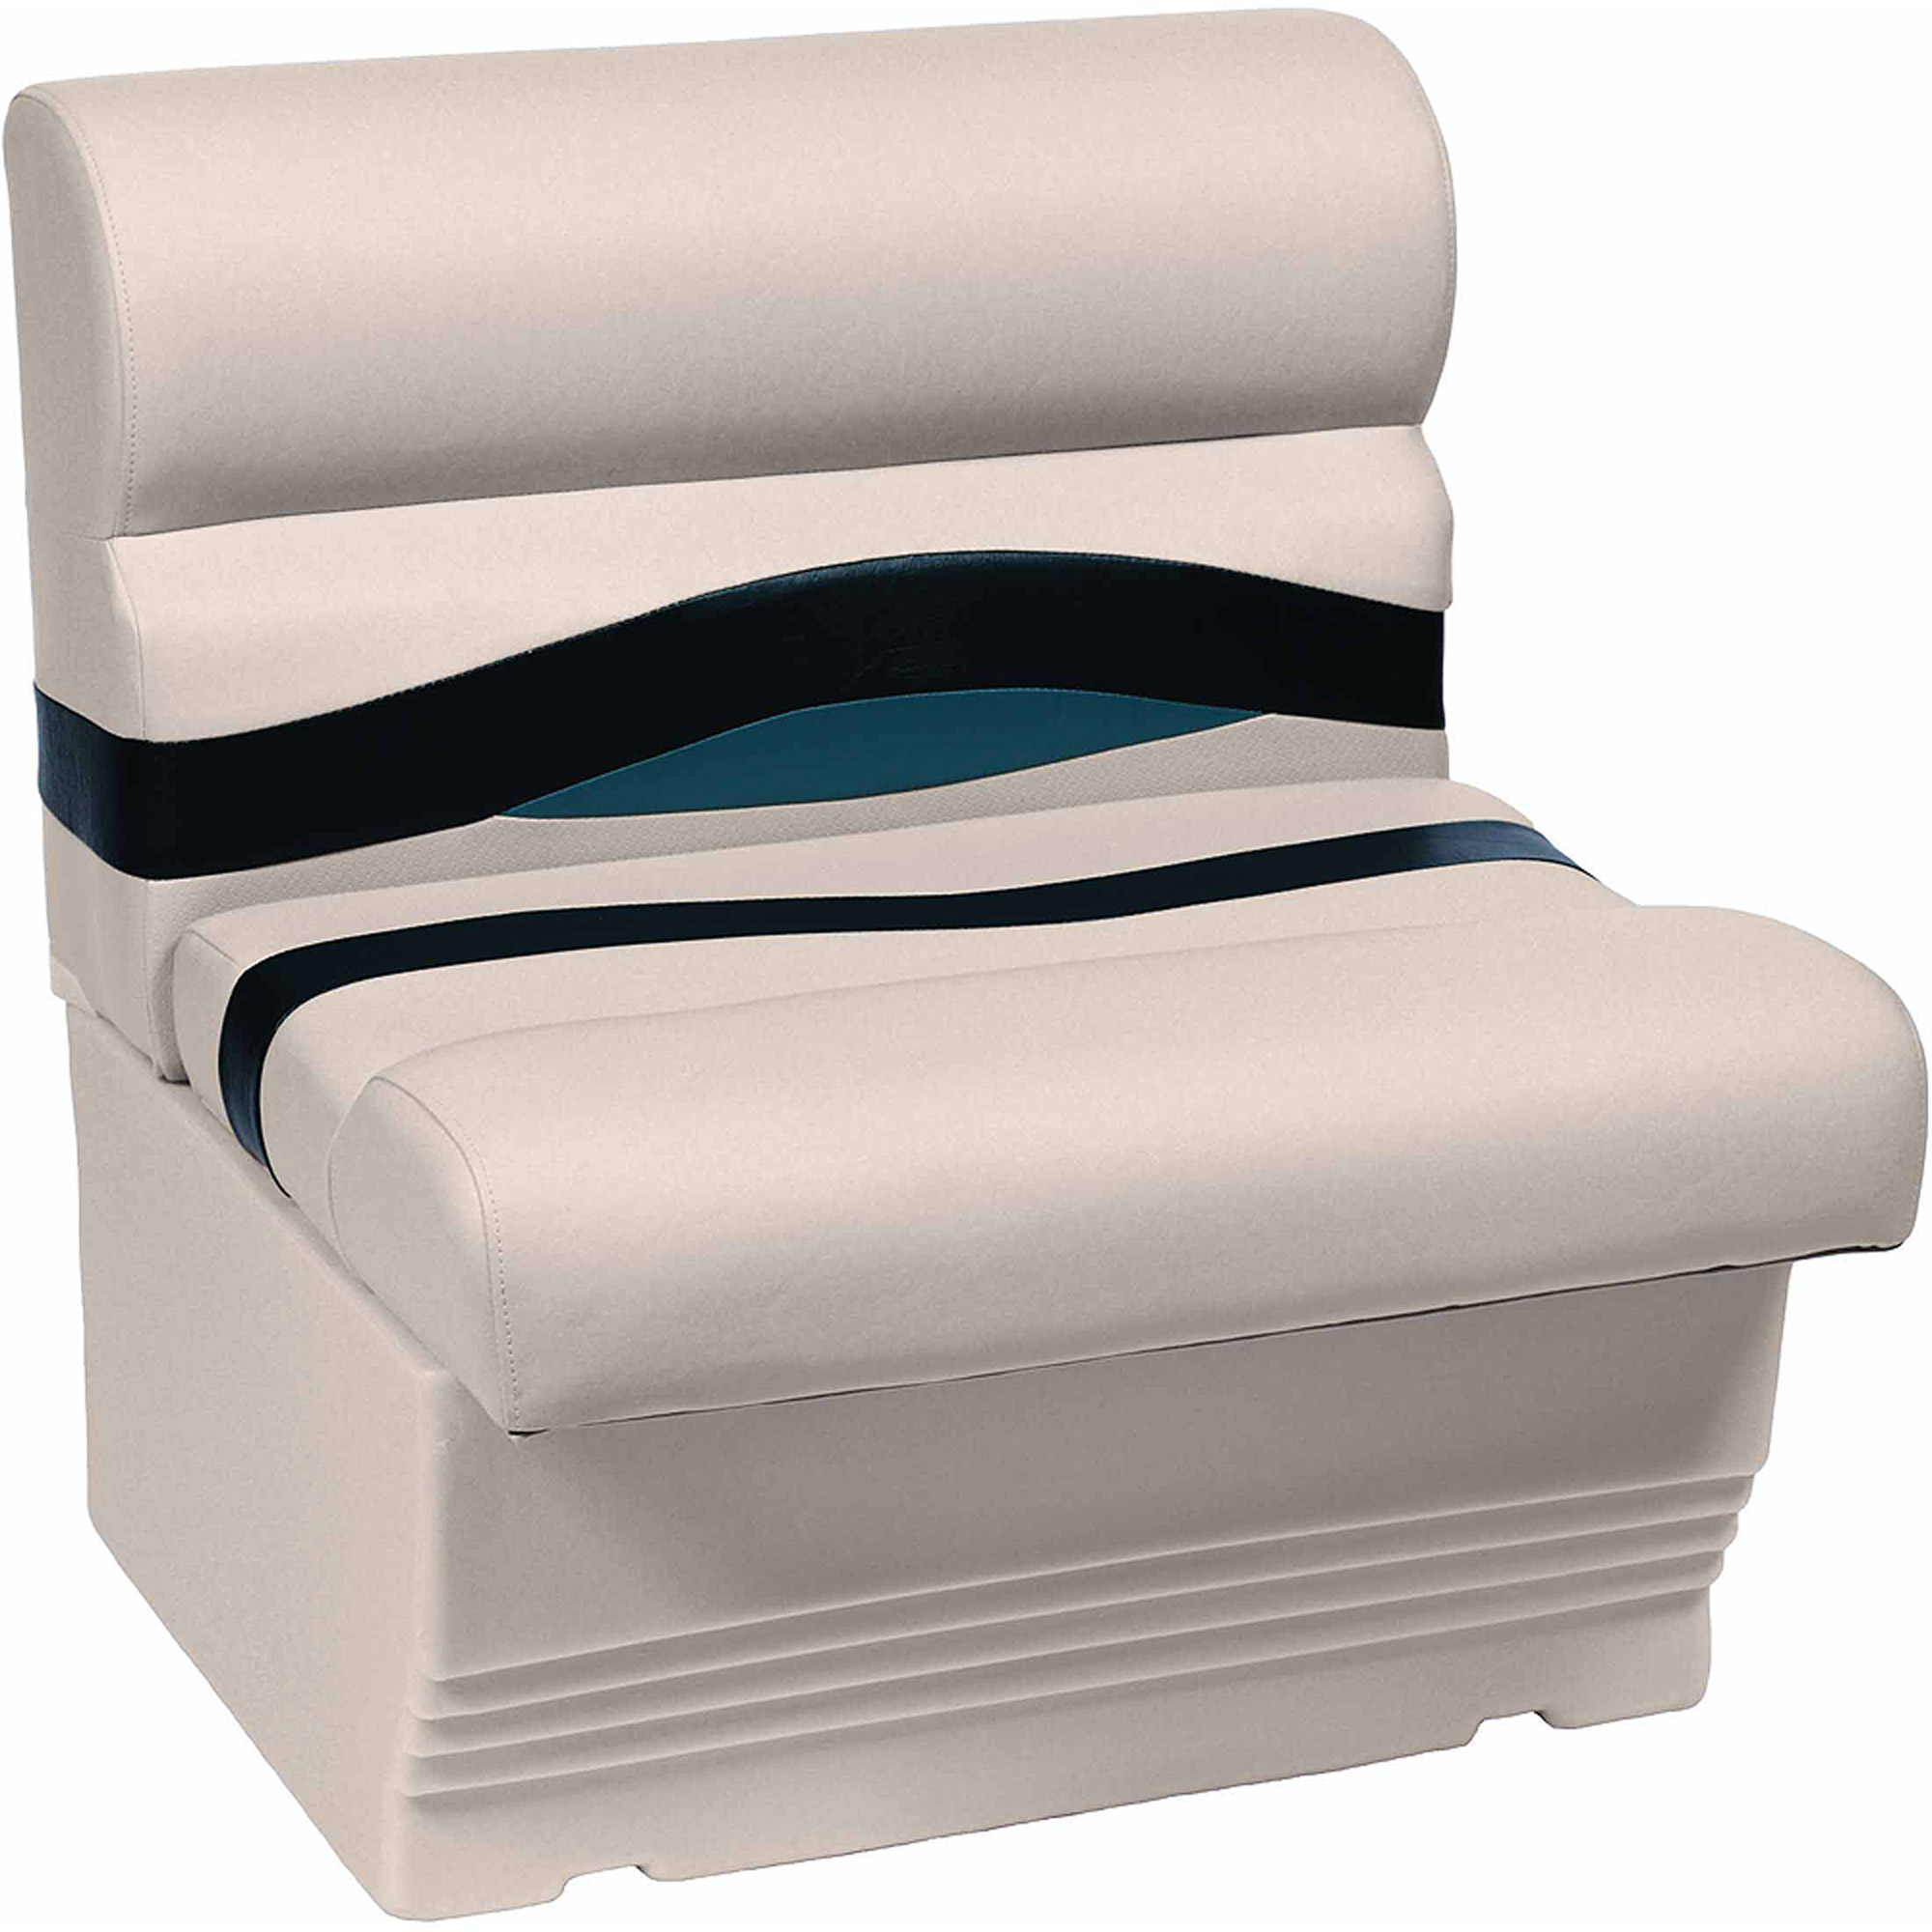 "Wise Premier Series Pontoon 27"" Bench Seat and Base"